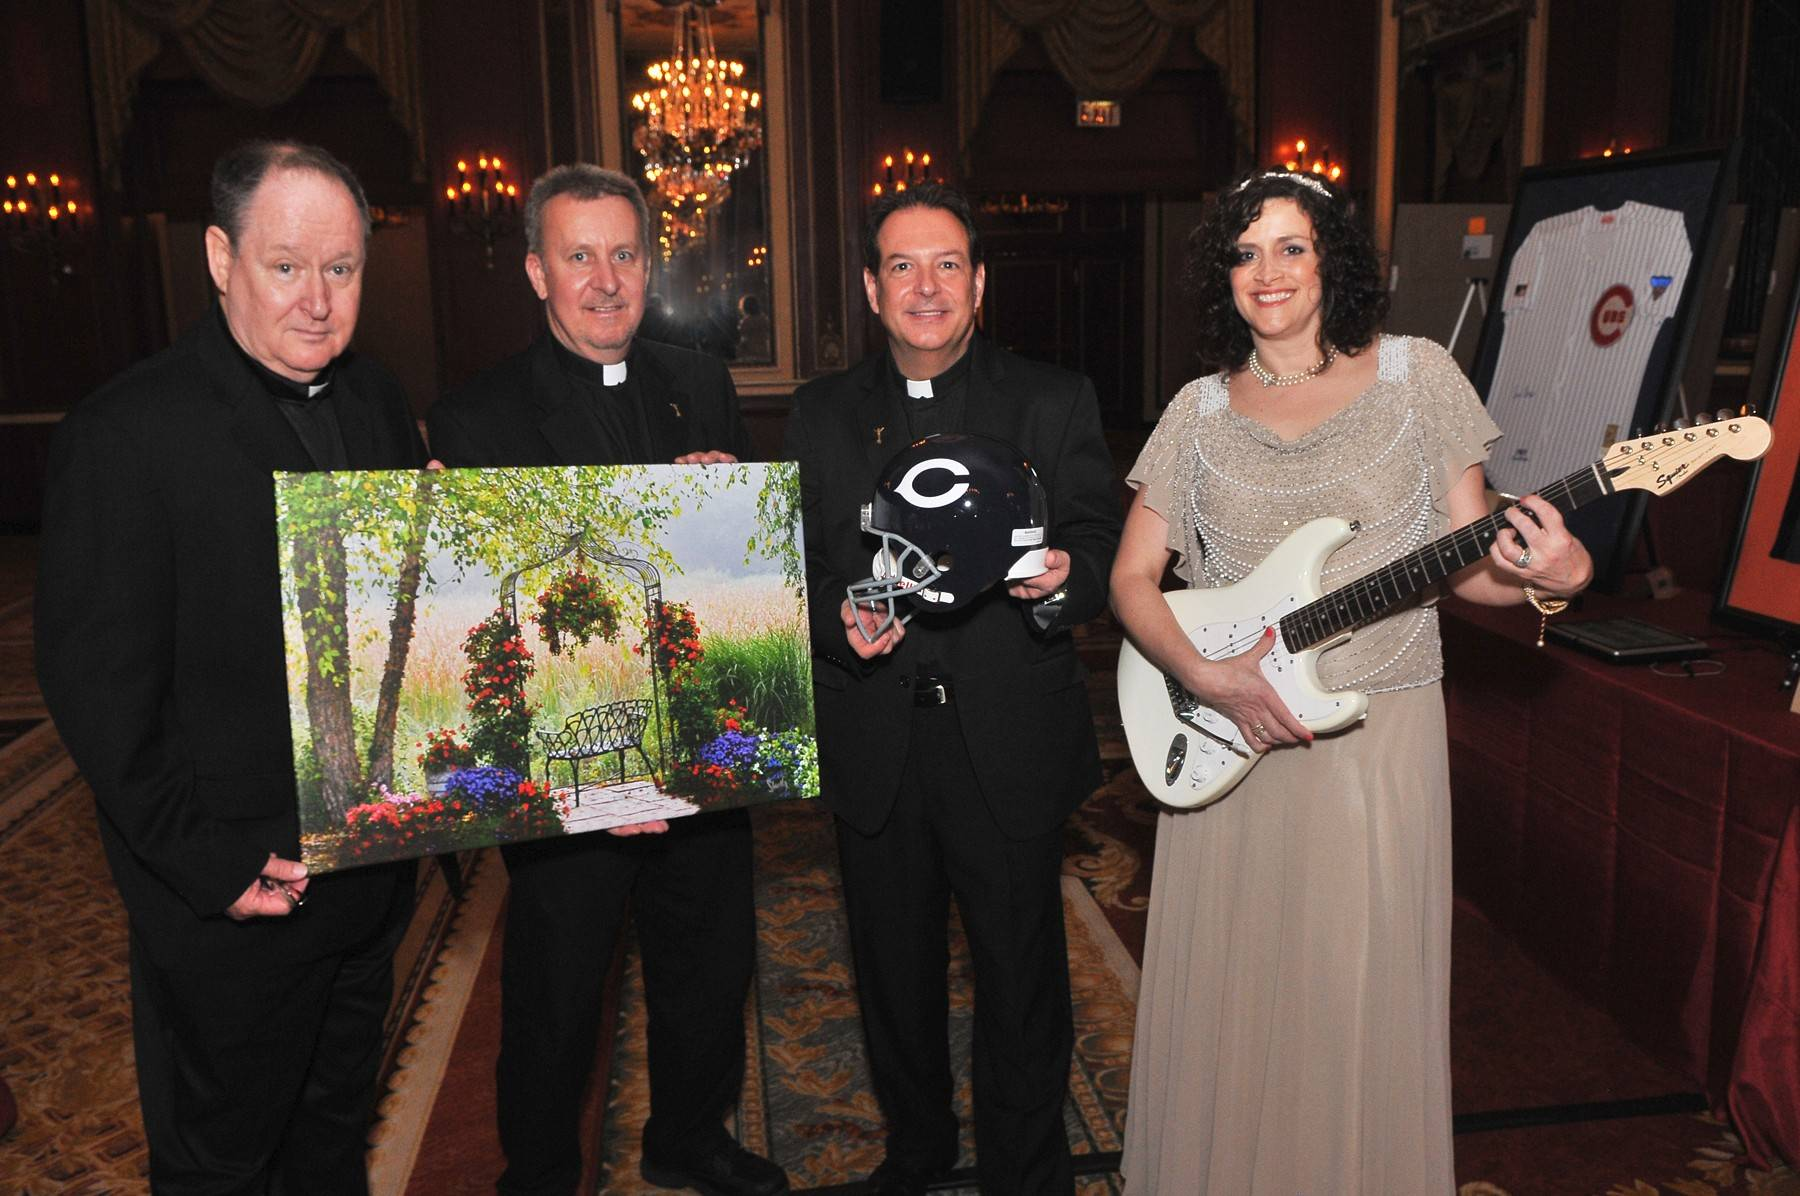 Showing off some of the silent auction items from the 2013 Ball de Fleur, are, from left, Daniel McCormick, C.F.A., Provincial Immaculate Conception Province; Brother Paul Magner, Brother Tom Klein C.F.A., and Melanie Furlan, vice president of advancement, Alexian Brothers Foundation.